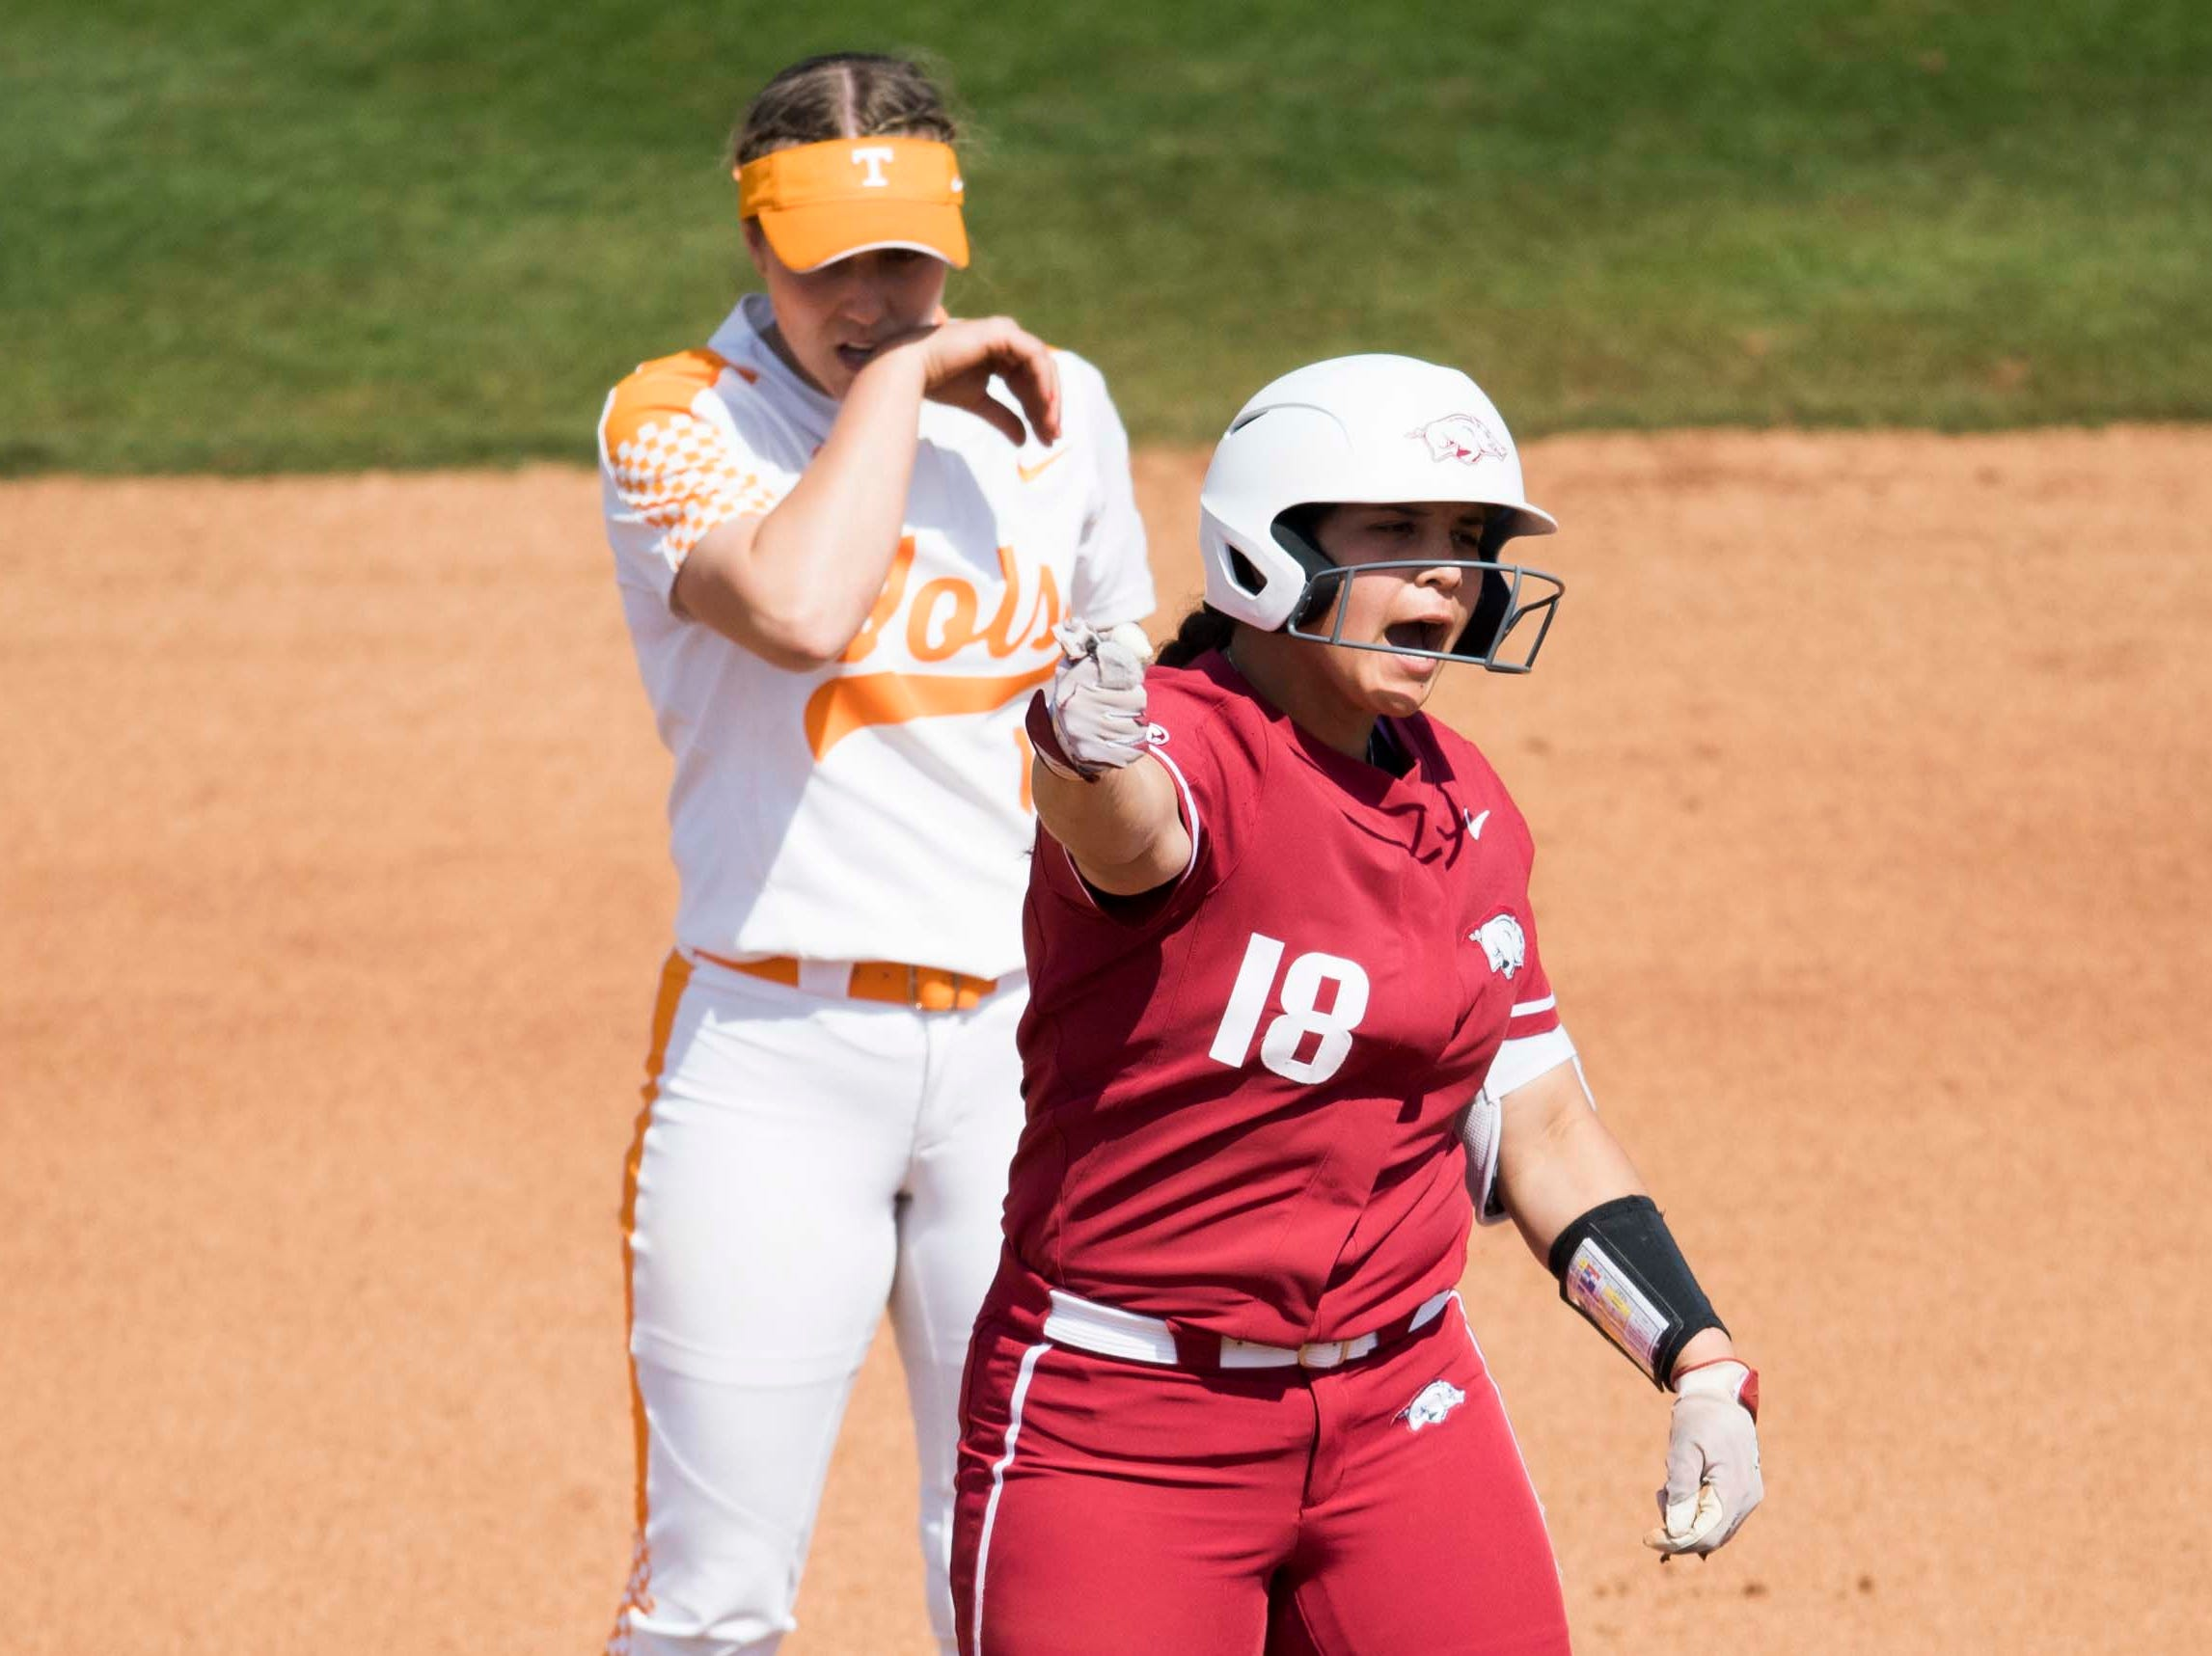 Arkansas' Ashley Diaz (18) celebrates a double from second base during a Lady Vols softball game against Arkansas at Sherri Parker Lee stadium on University of Tennessee's campus in Knoxville Sunday, March 24, 2019. The Lady Vols defeated Arkansas.